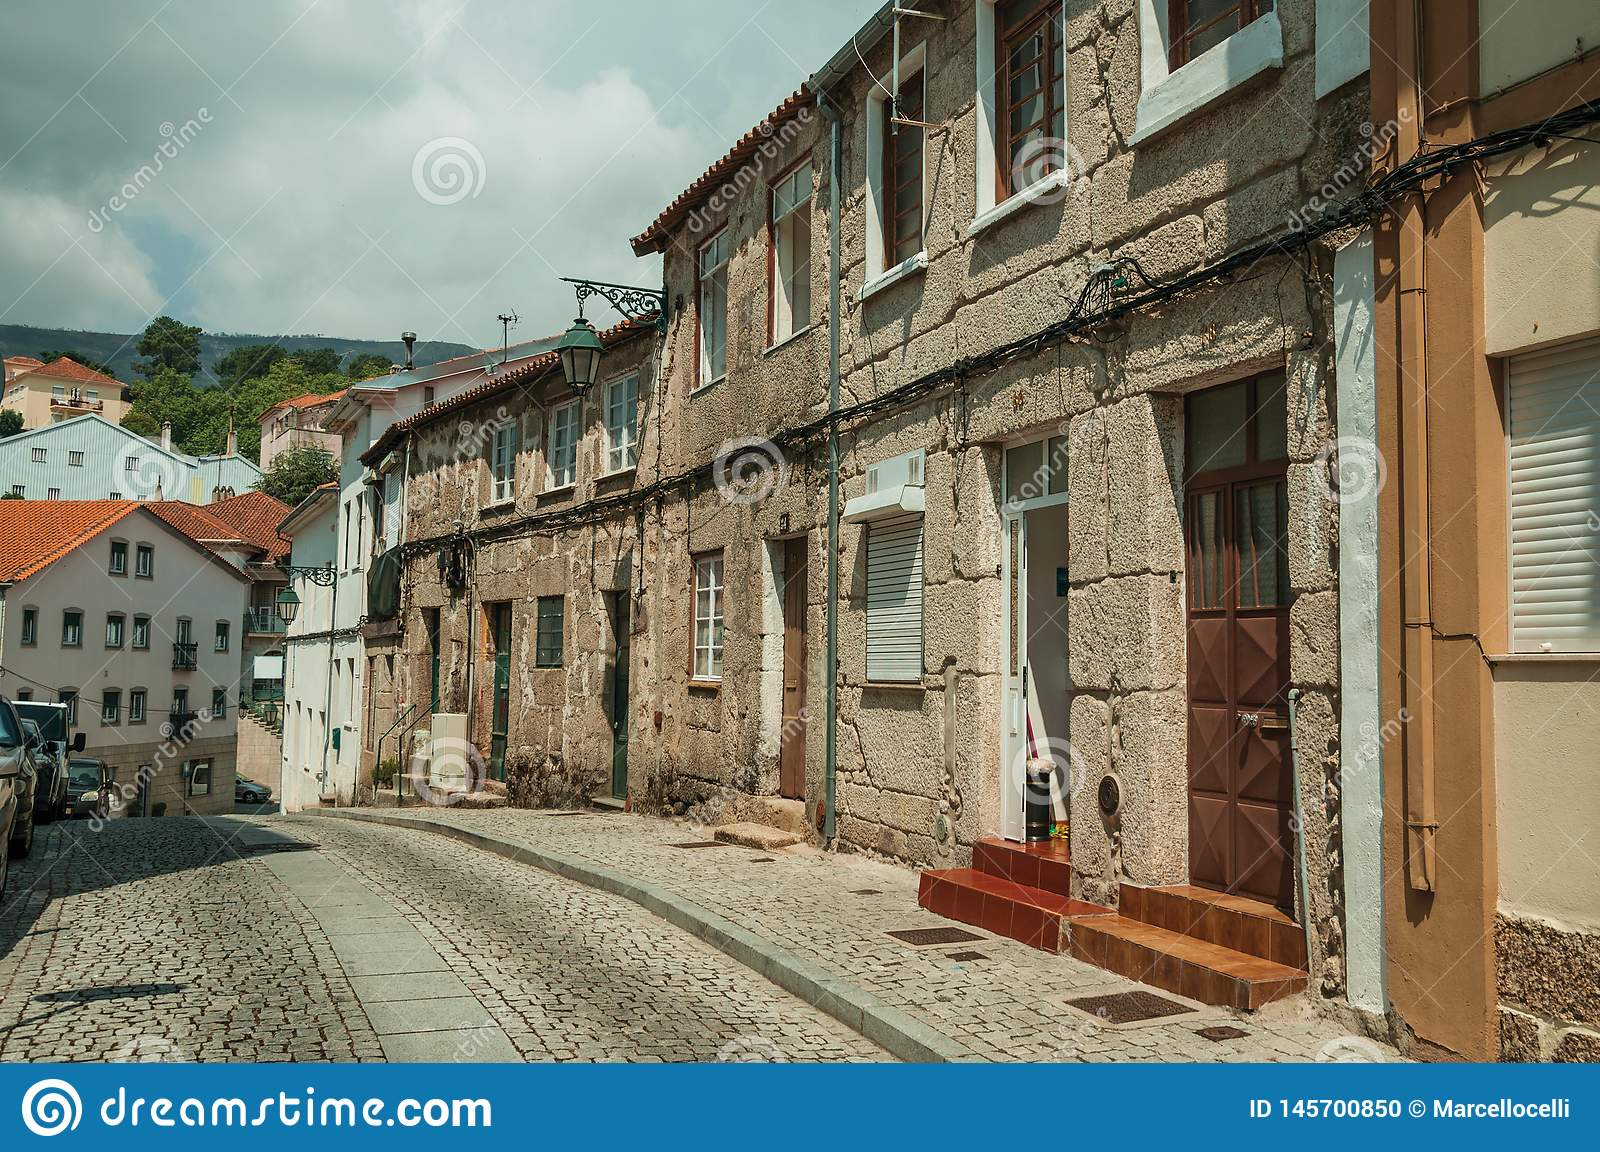 Old houses with stone wall in a deserted alley